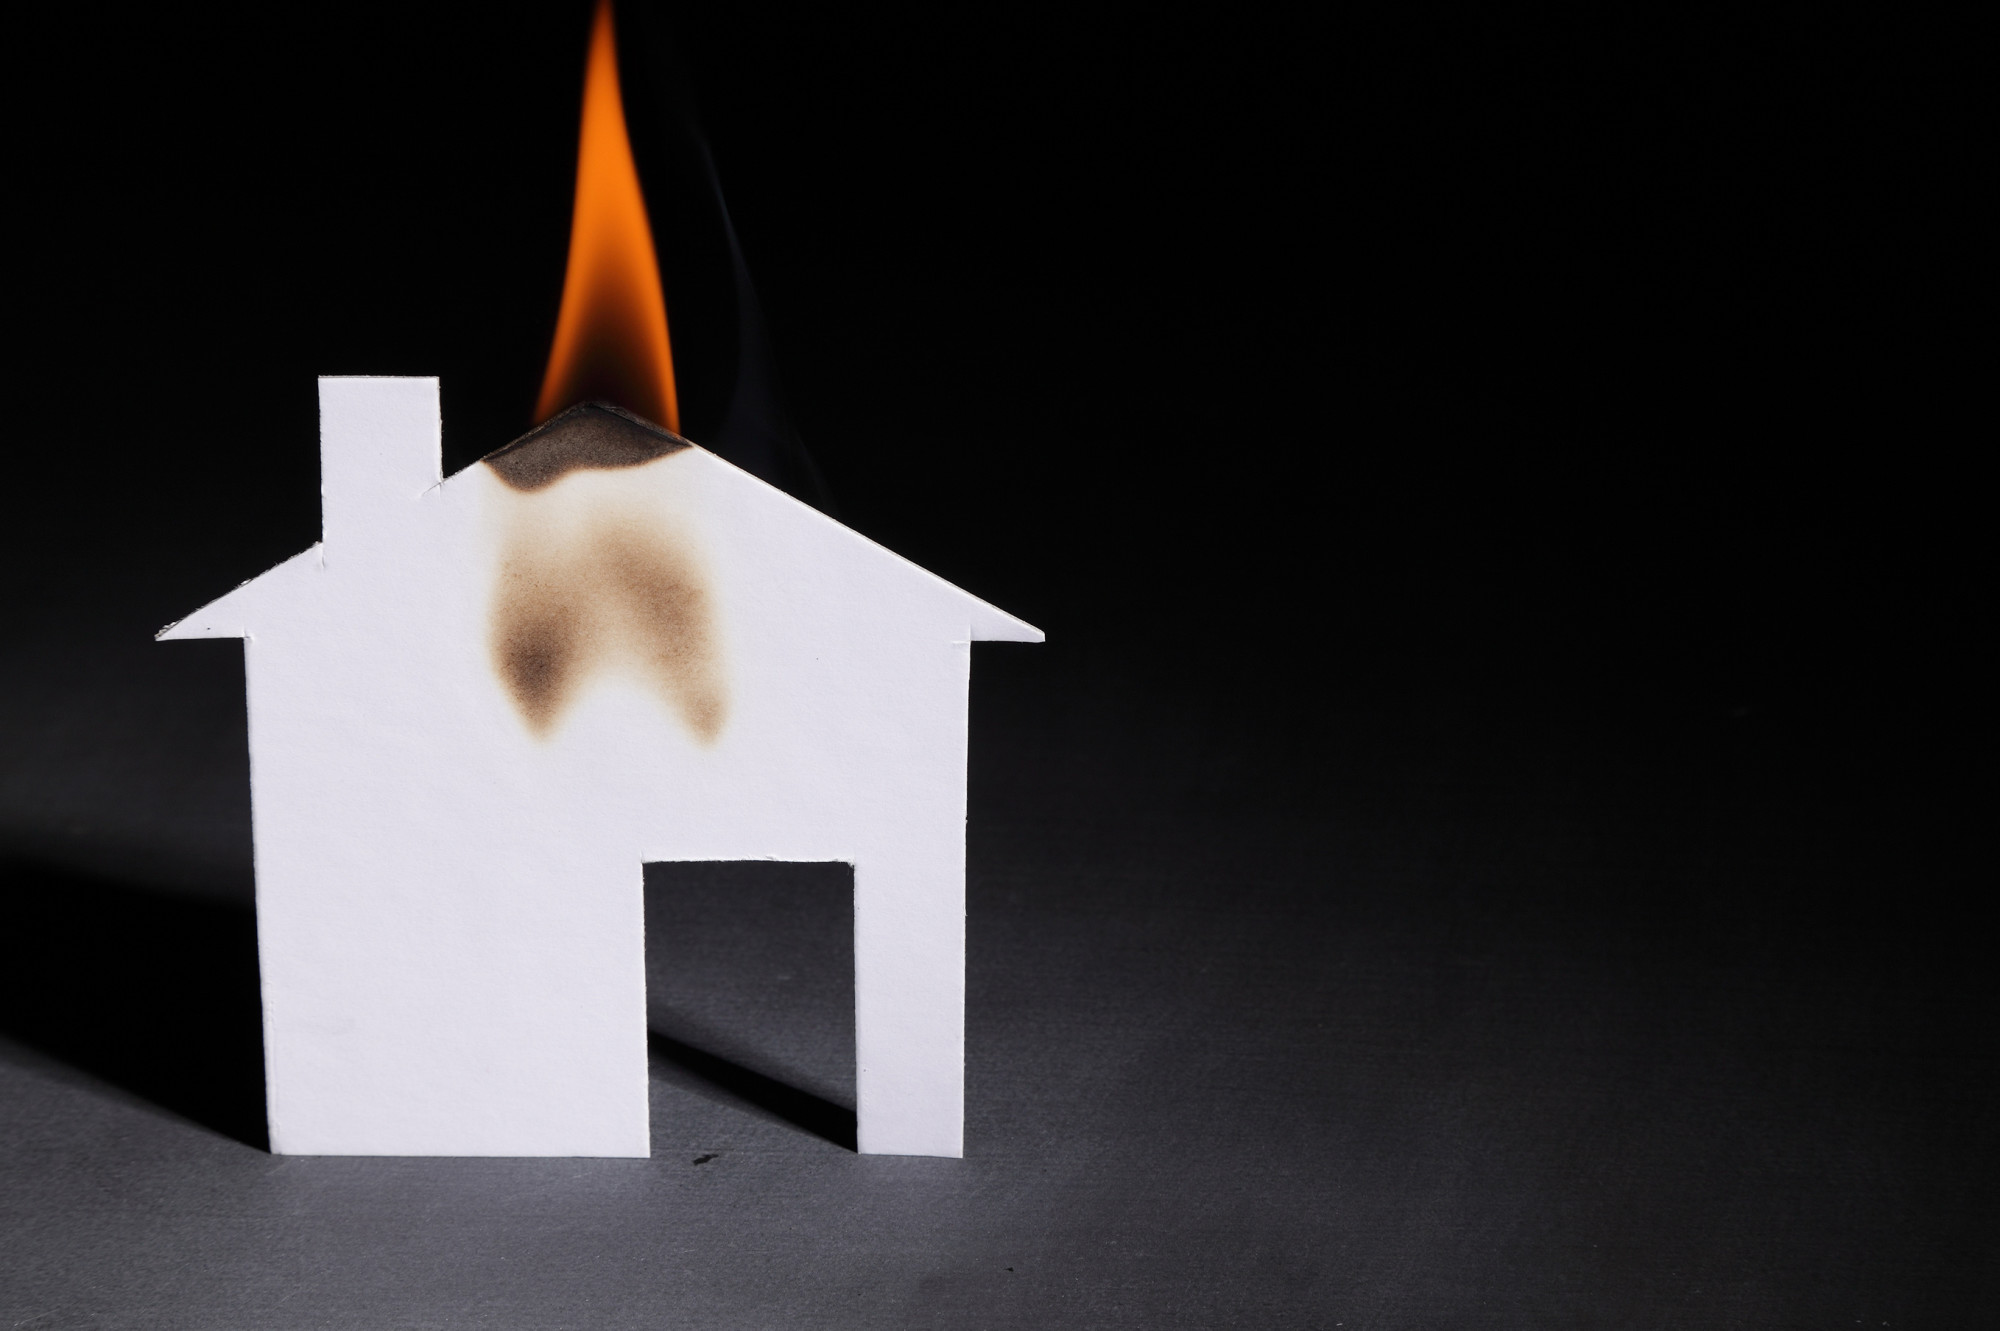 paper house model on fire in black background